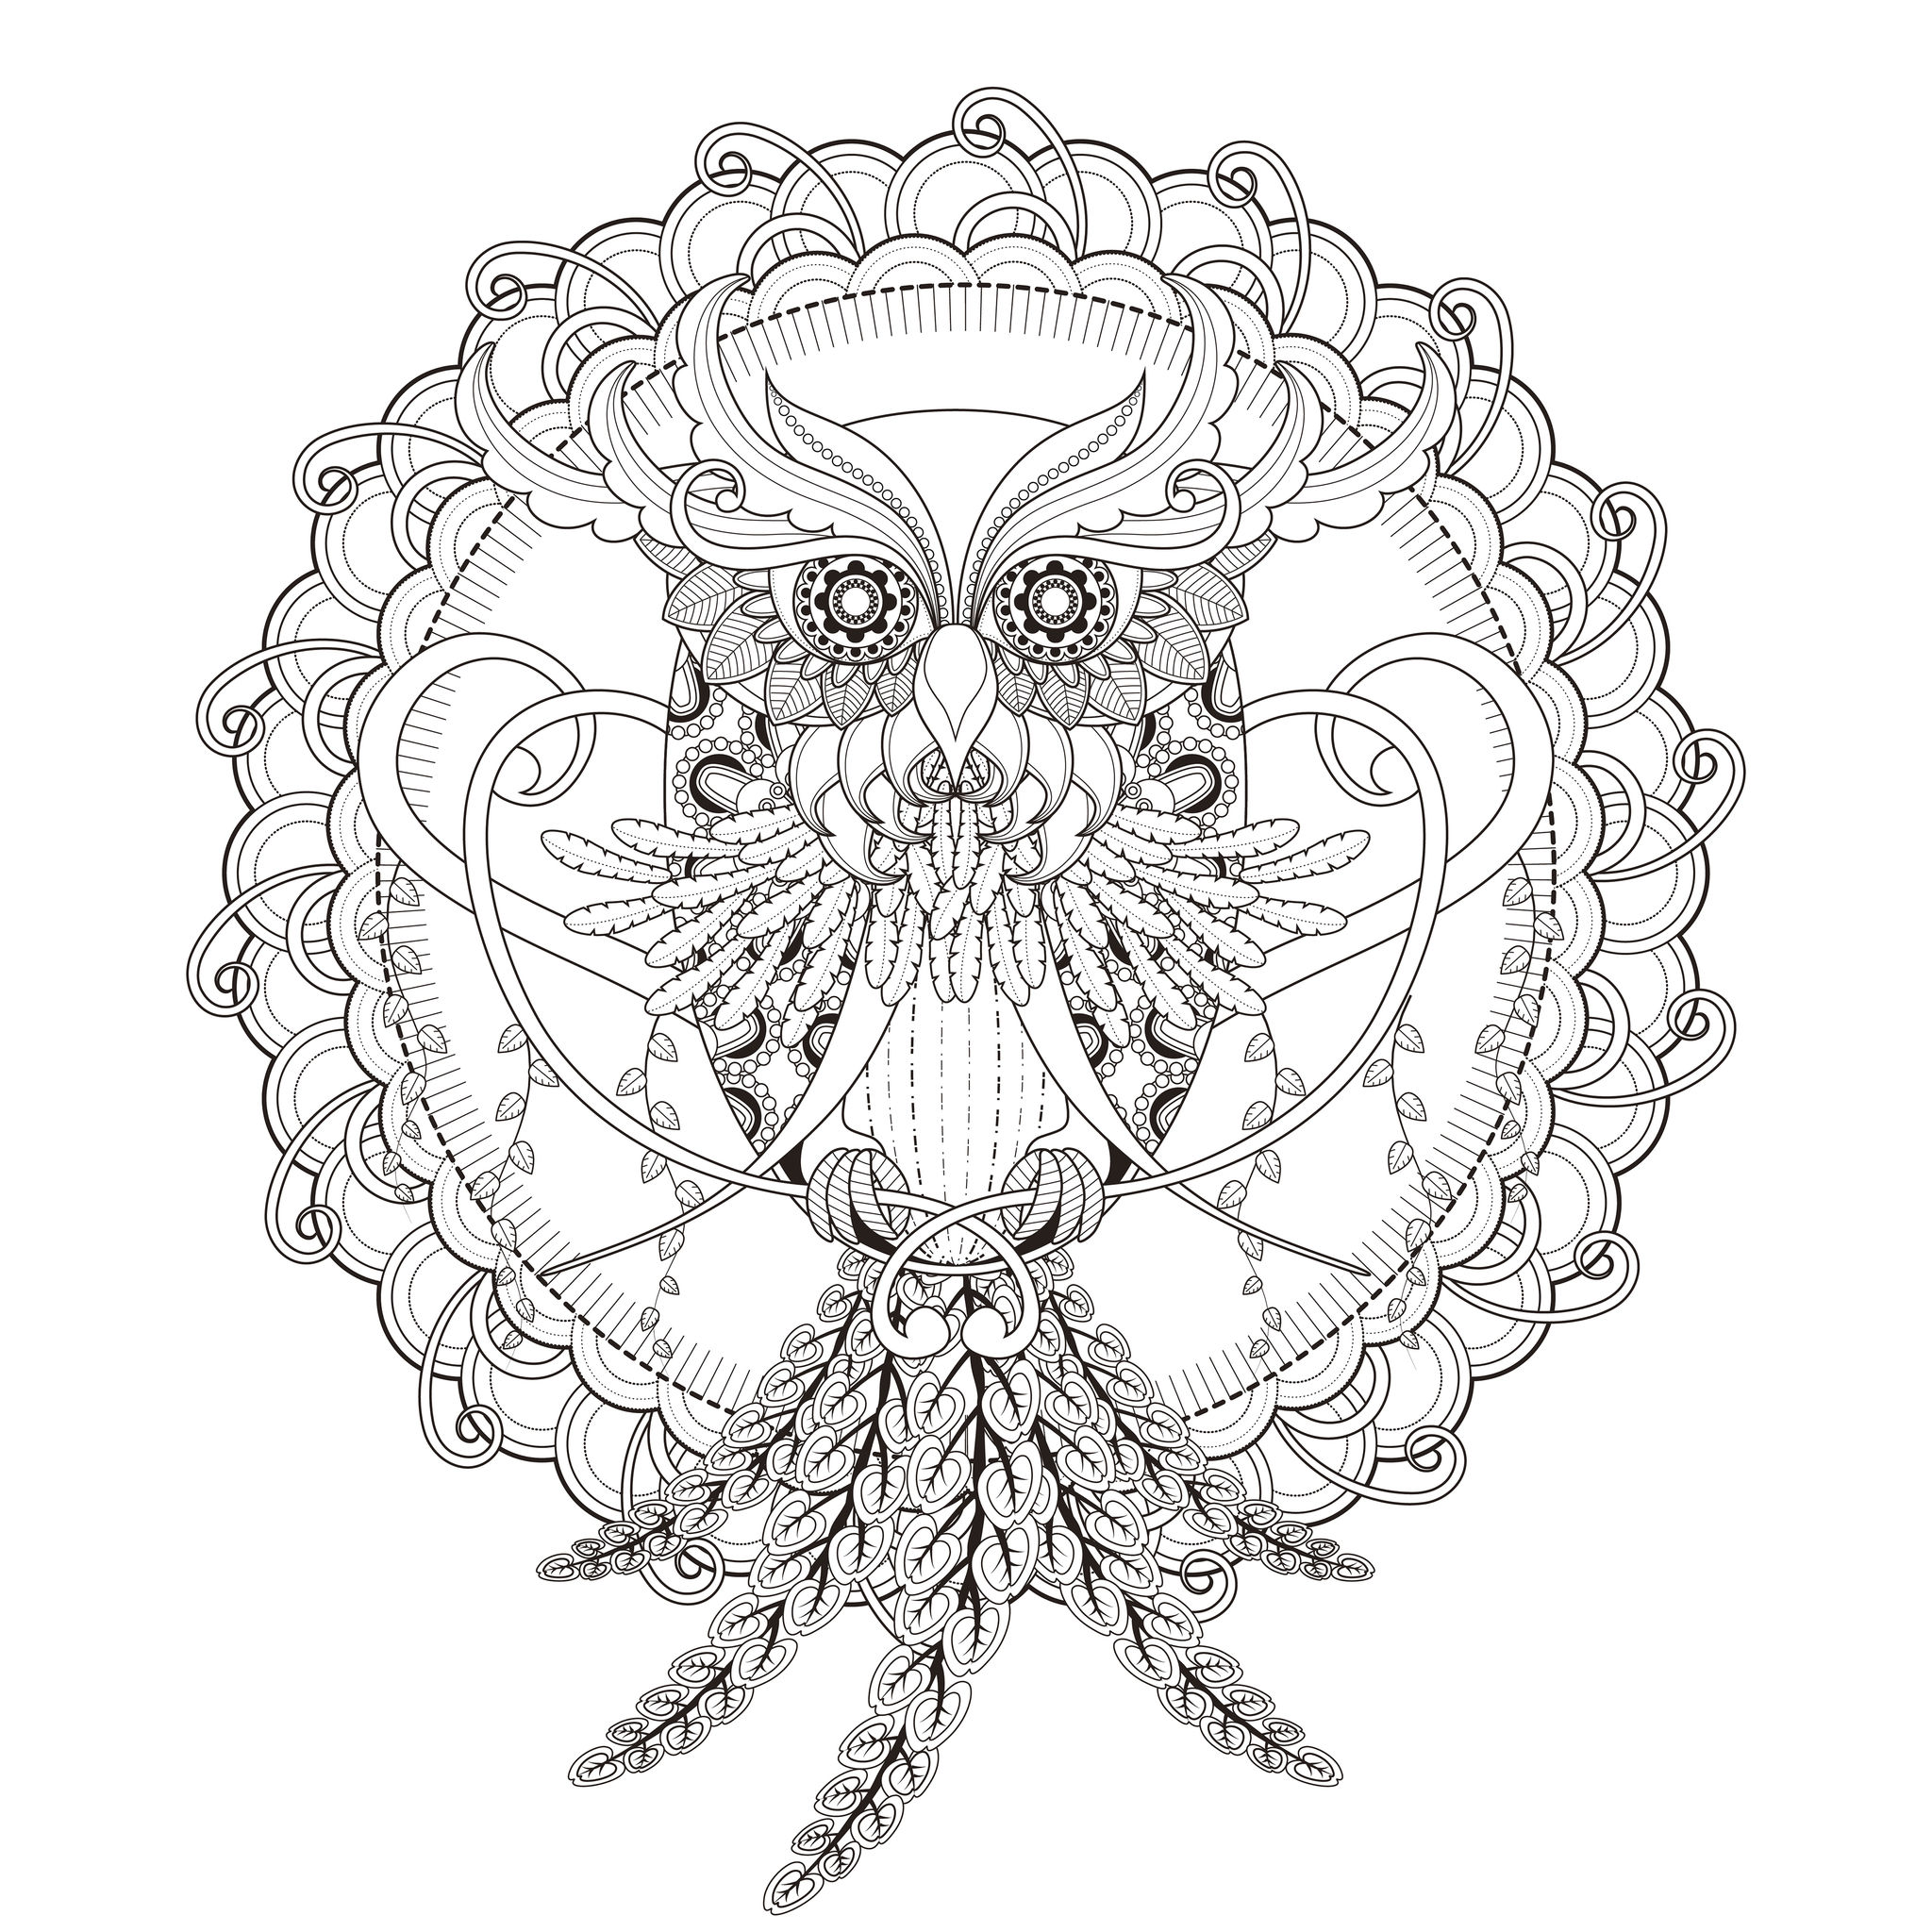 Beautiful Owl in a Mandala by kchung